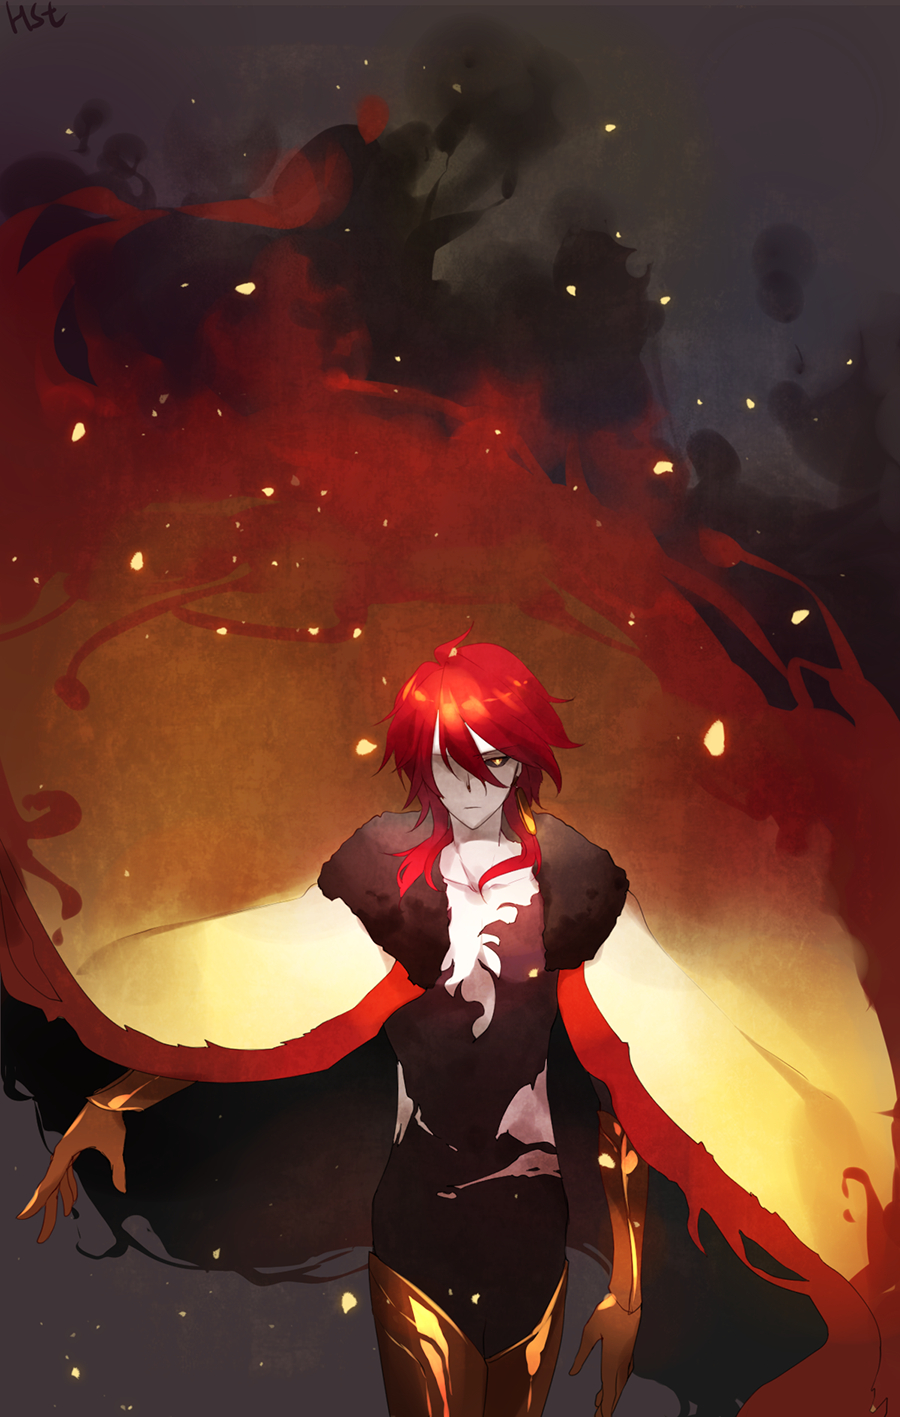 Red Lancer - Fate/Apocrypha - Zerochan Anime Image Board